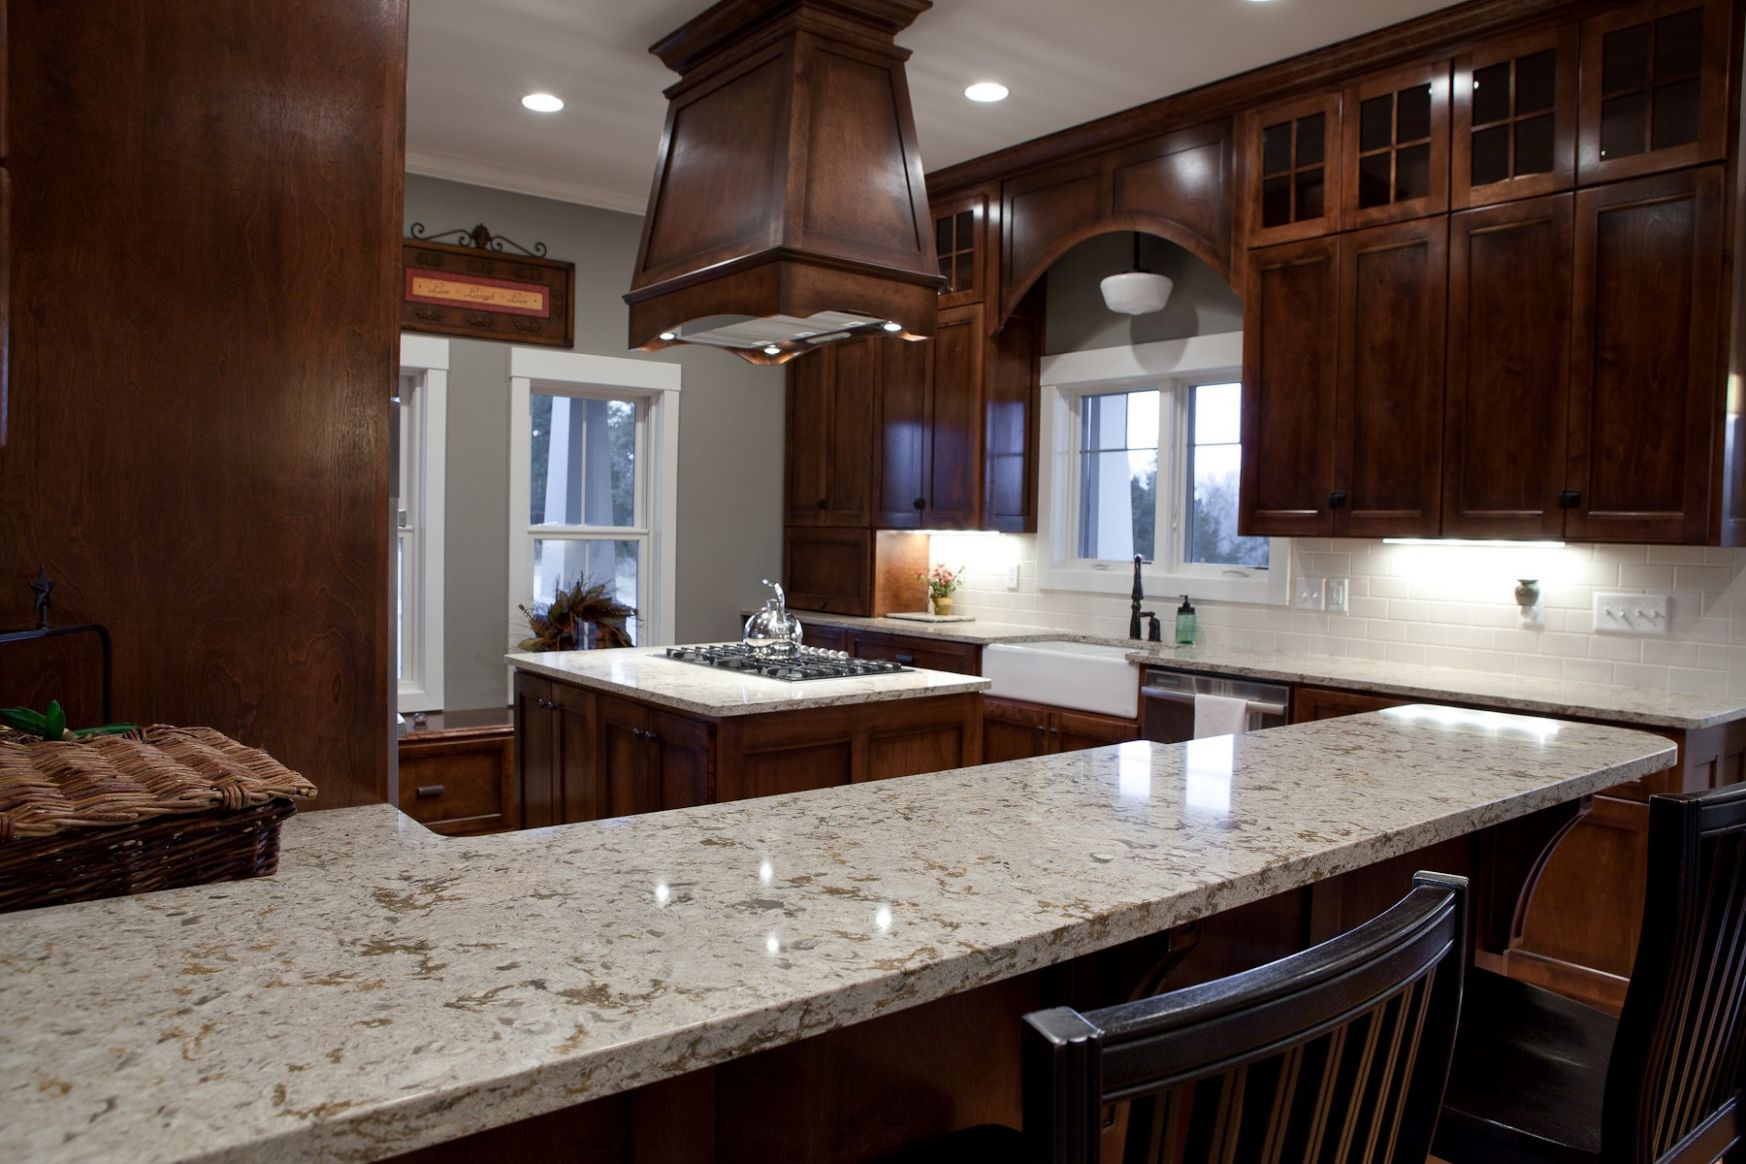 8 Kitchen Countertop Options and Ideas for 8 - kitchen ideas with quartz countertops